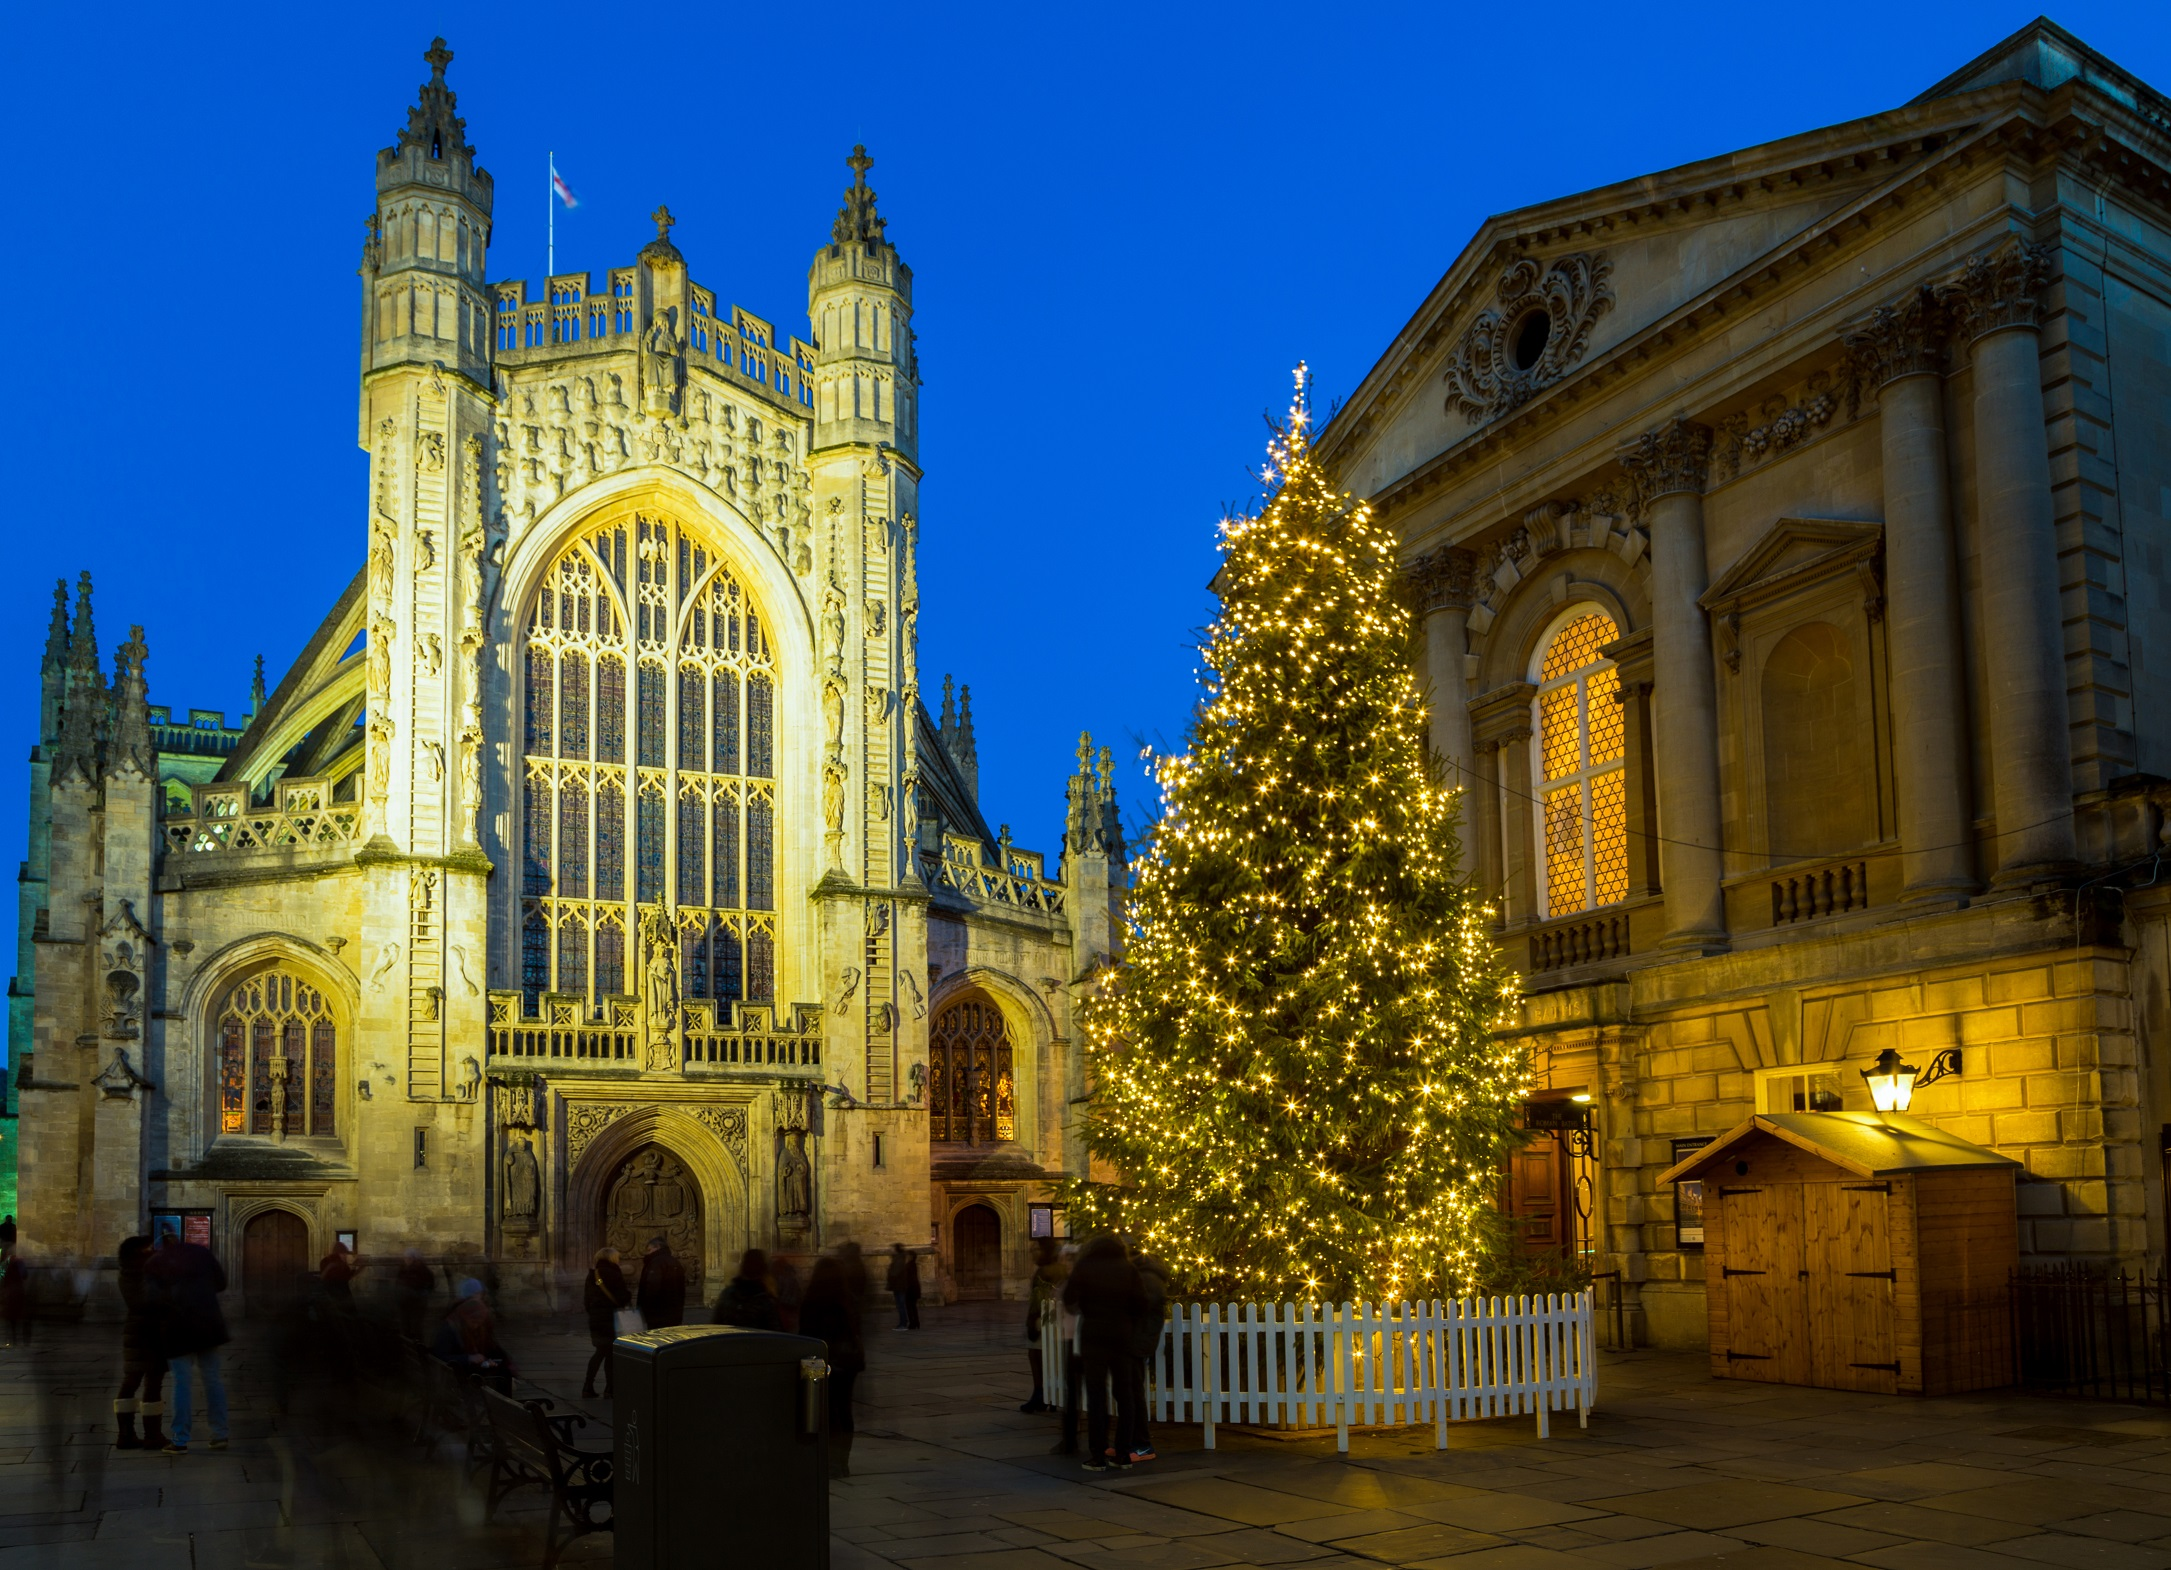 Bath Abbey - west front - Christmas tree - shutterstock_1407723806 (1) DO NOT USE FOR EDITORIAL